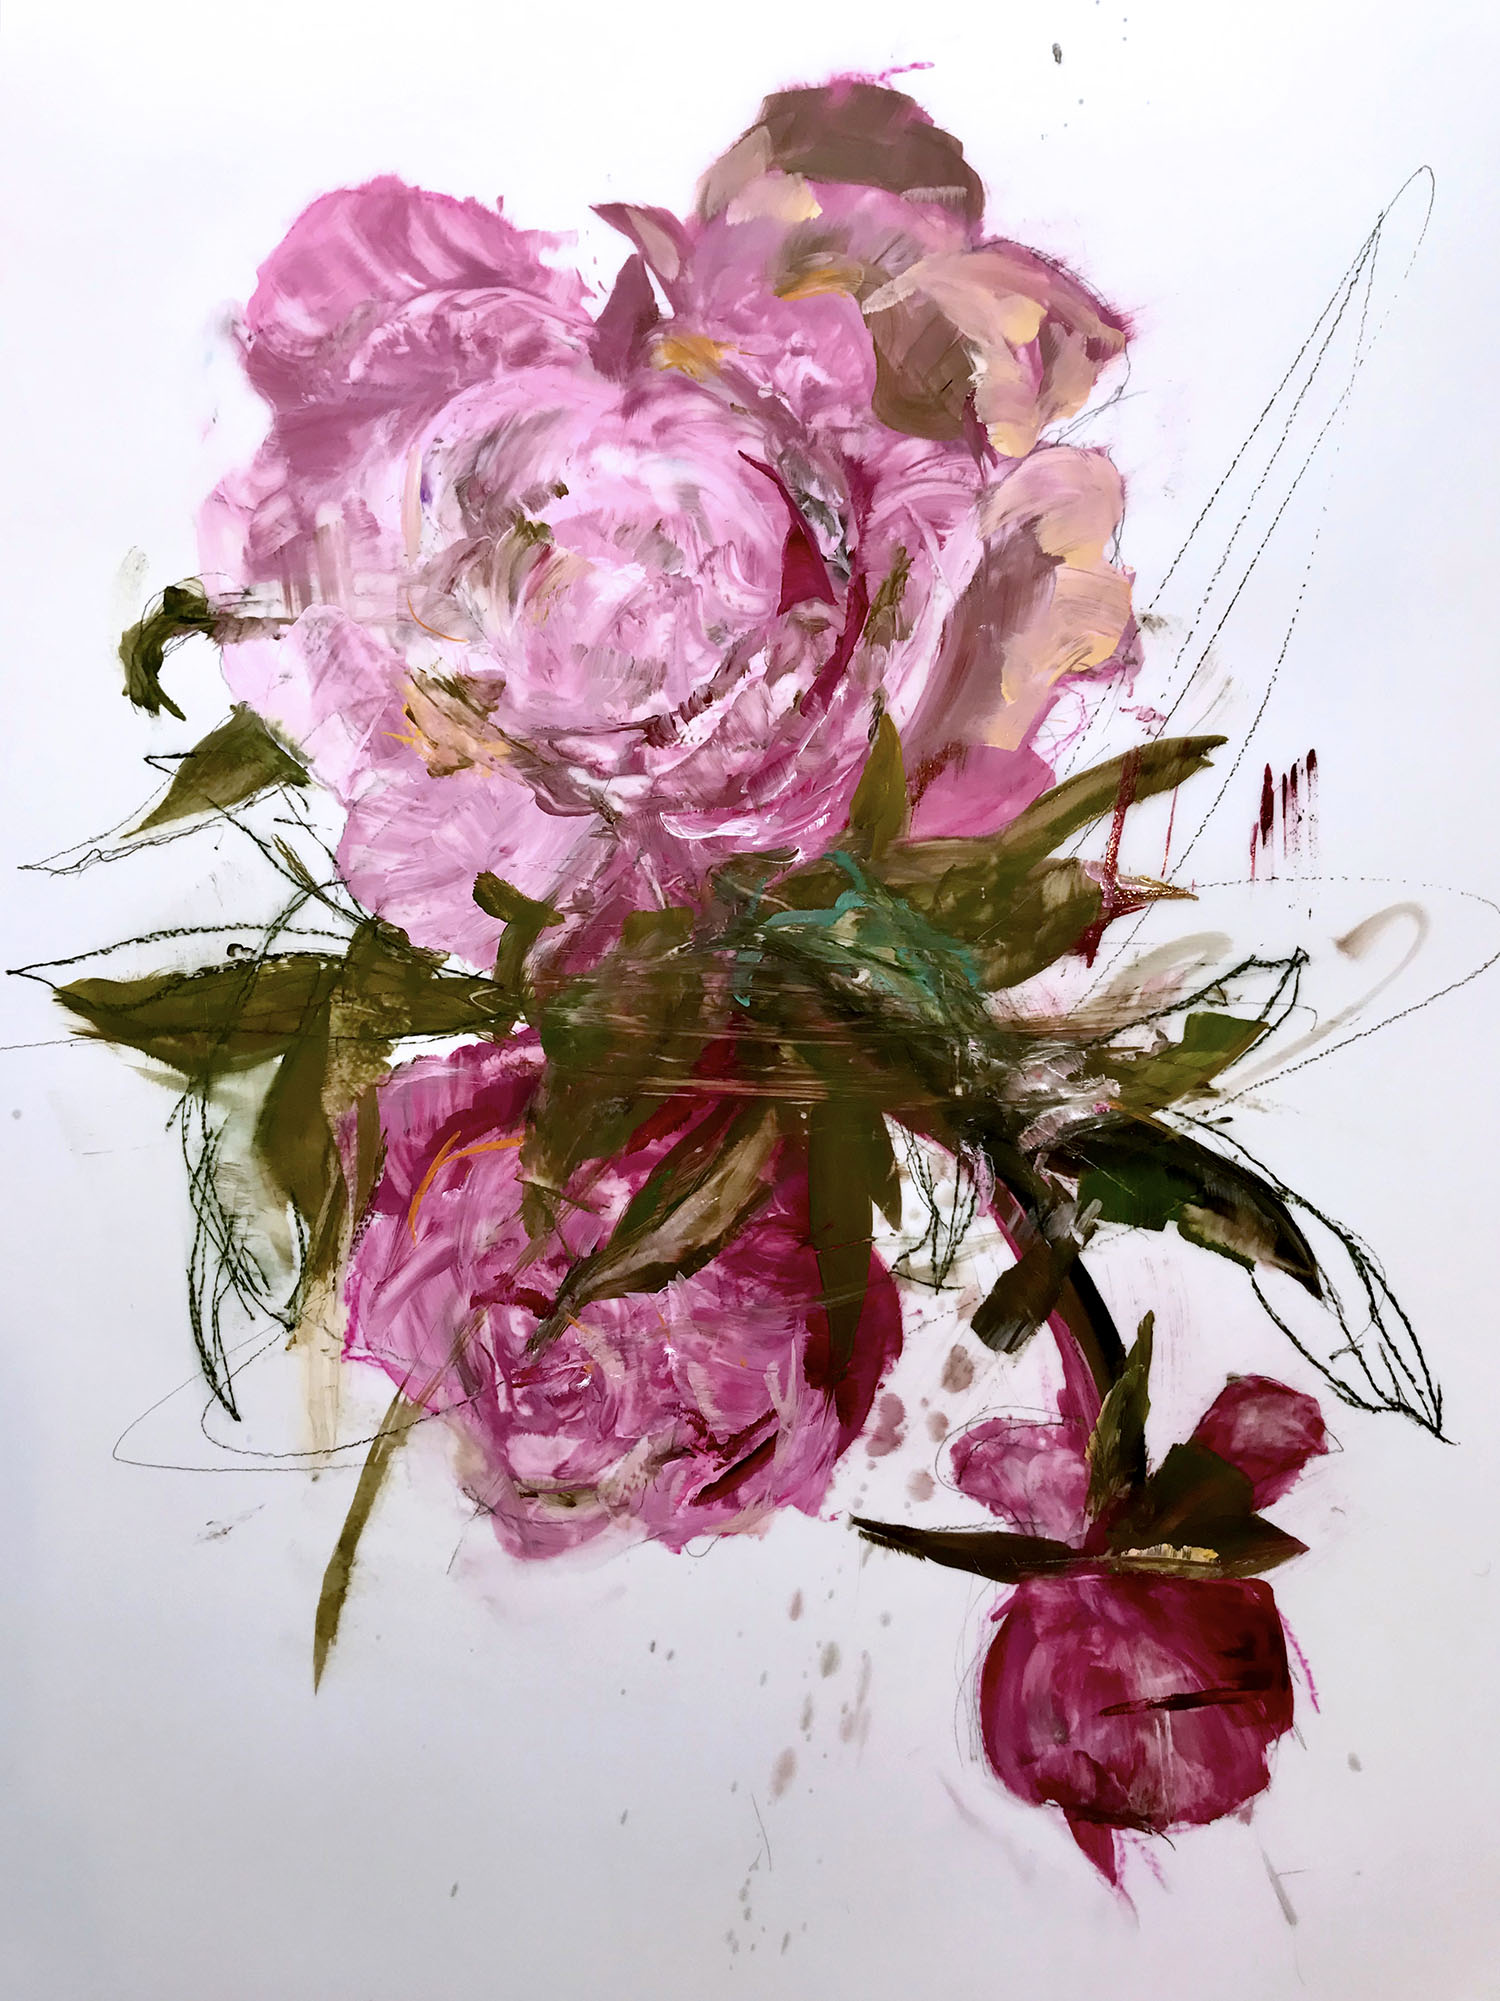 Madeleine Lamont, Effloresce 3, oil on mylar, 36 x 24 in.